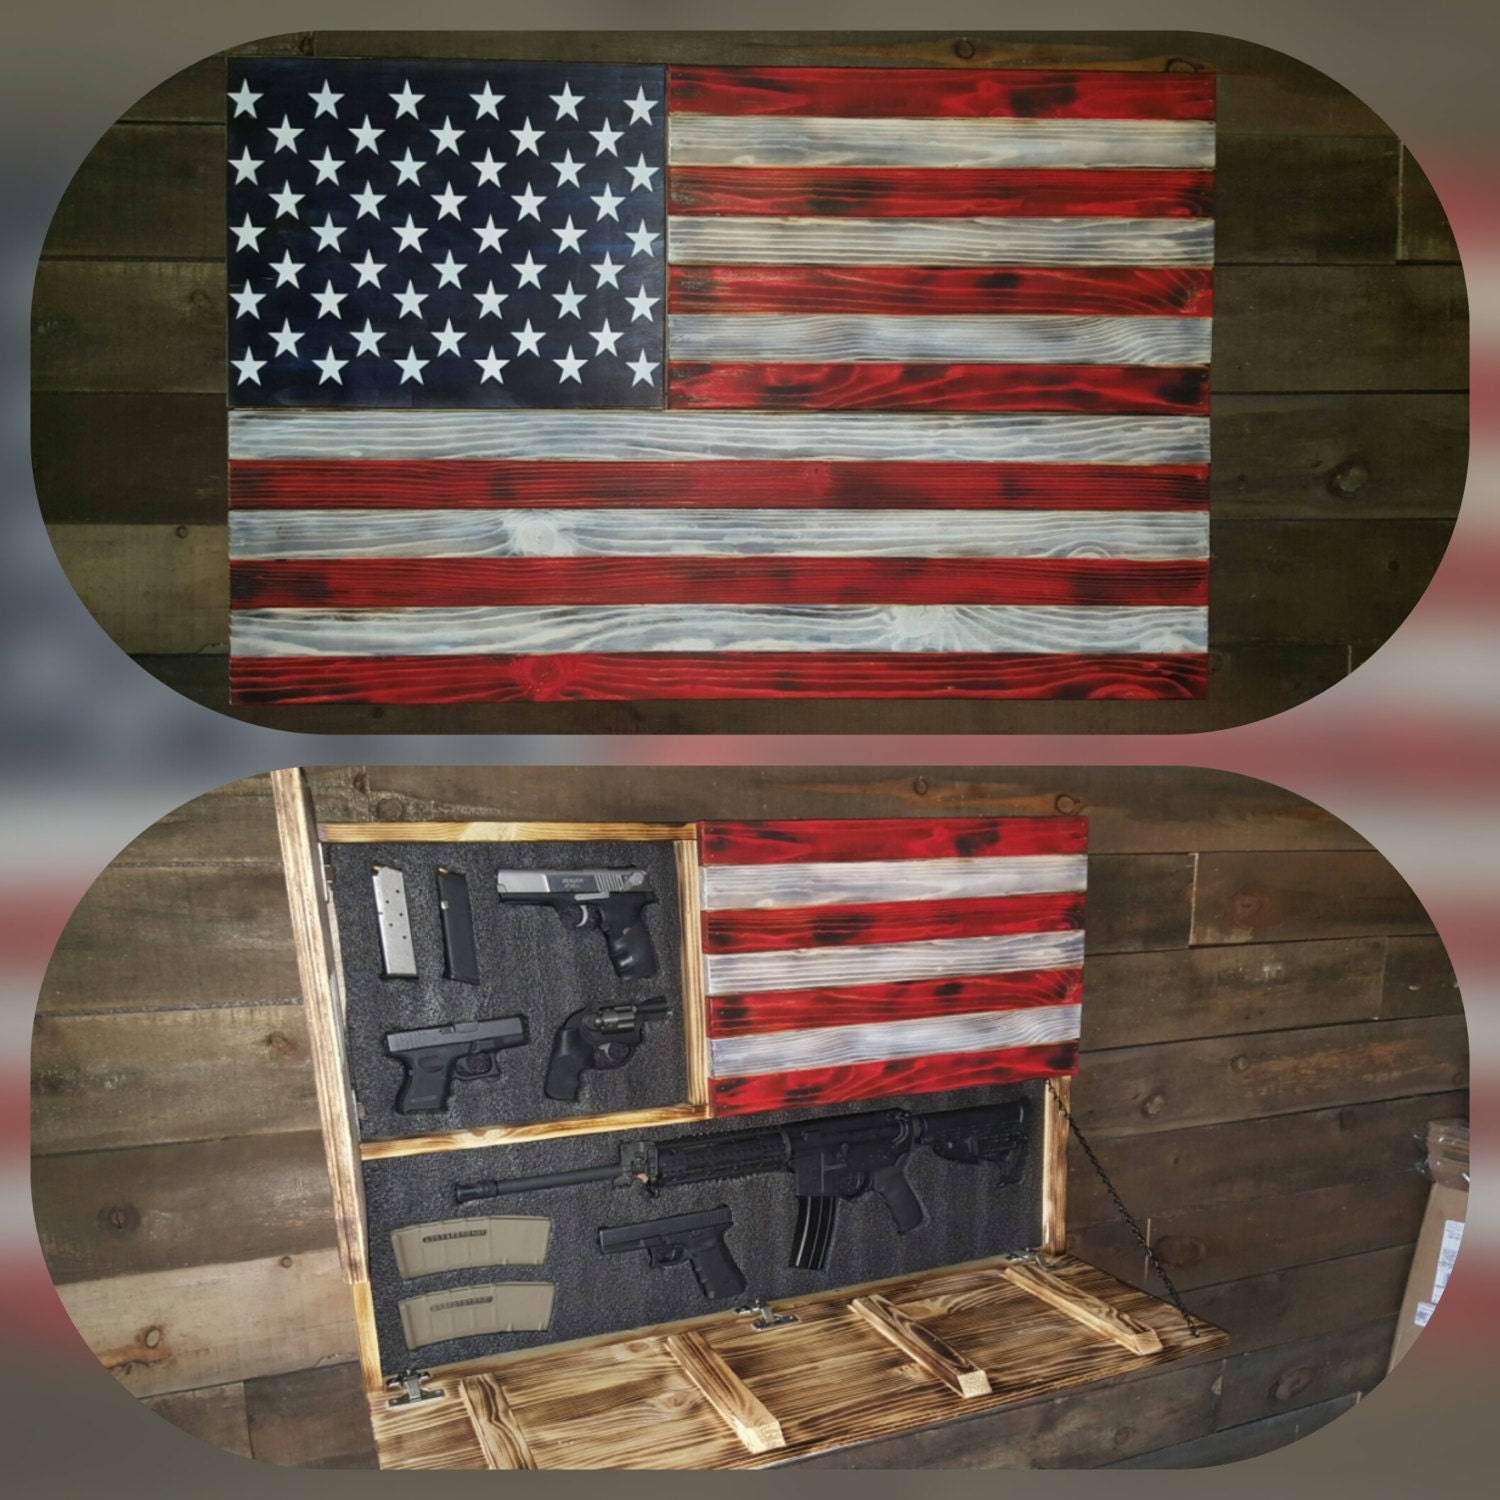 Large Burnt American Red White And Blue Concealed Weapon Flag